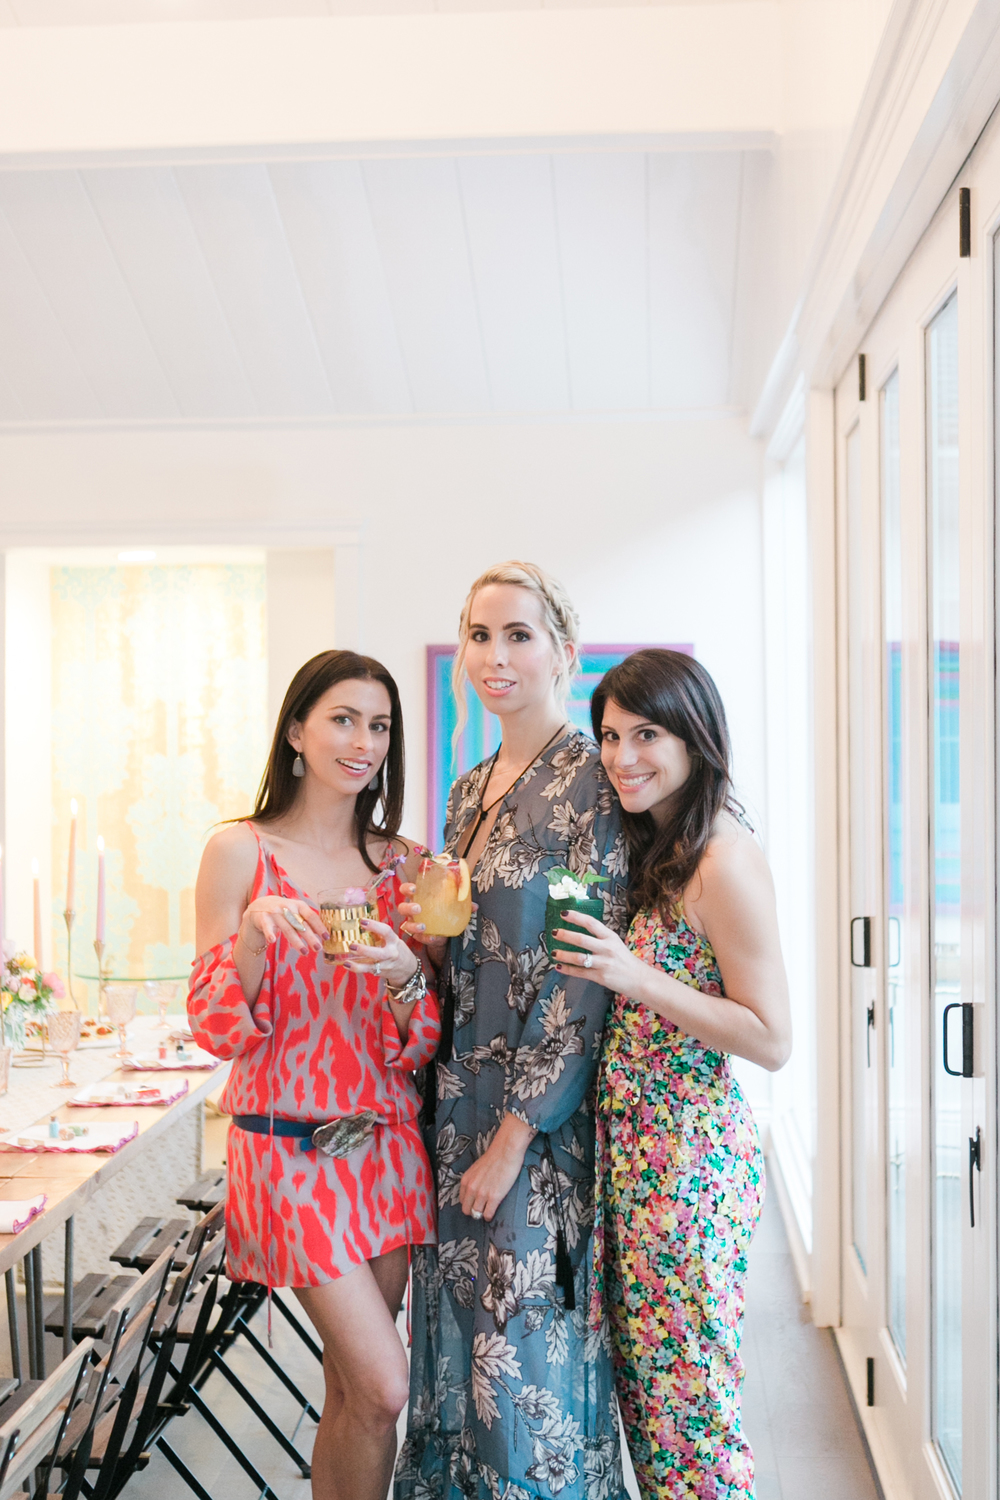 From left to right: Chase Beckerman, Laurén LaRocca, Stephanie Nortman.